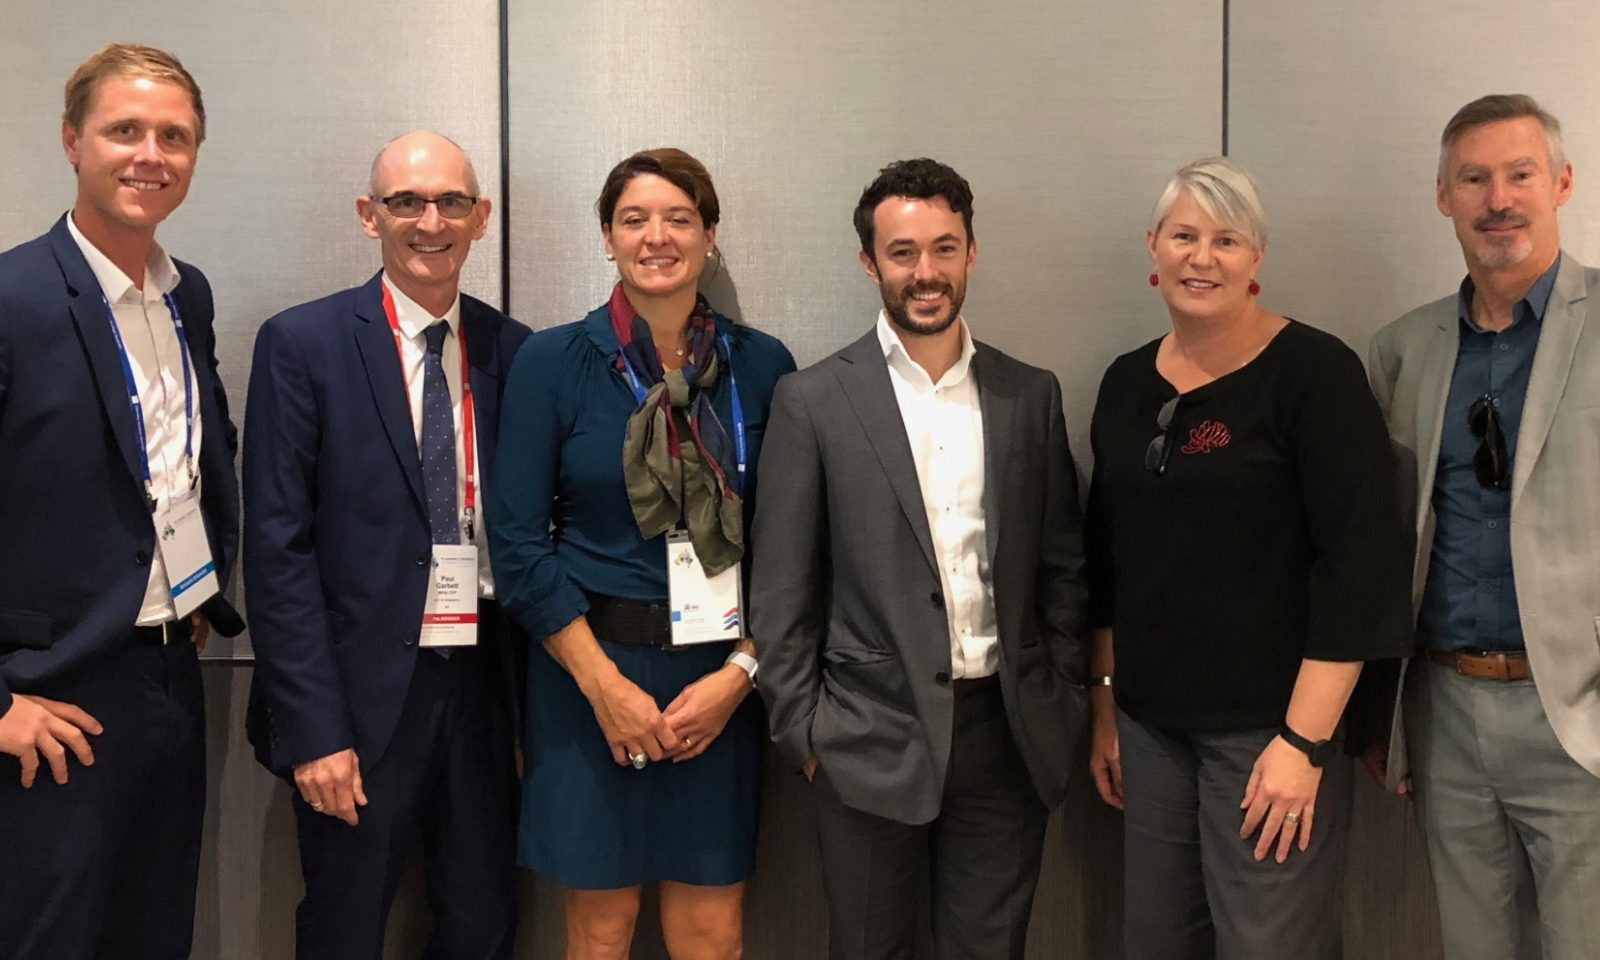 Sustainability leaders at Perth's National Planning congress